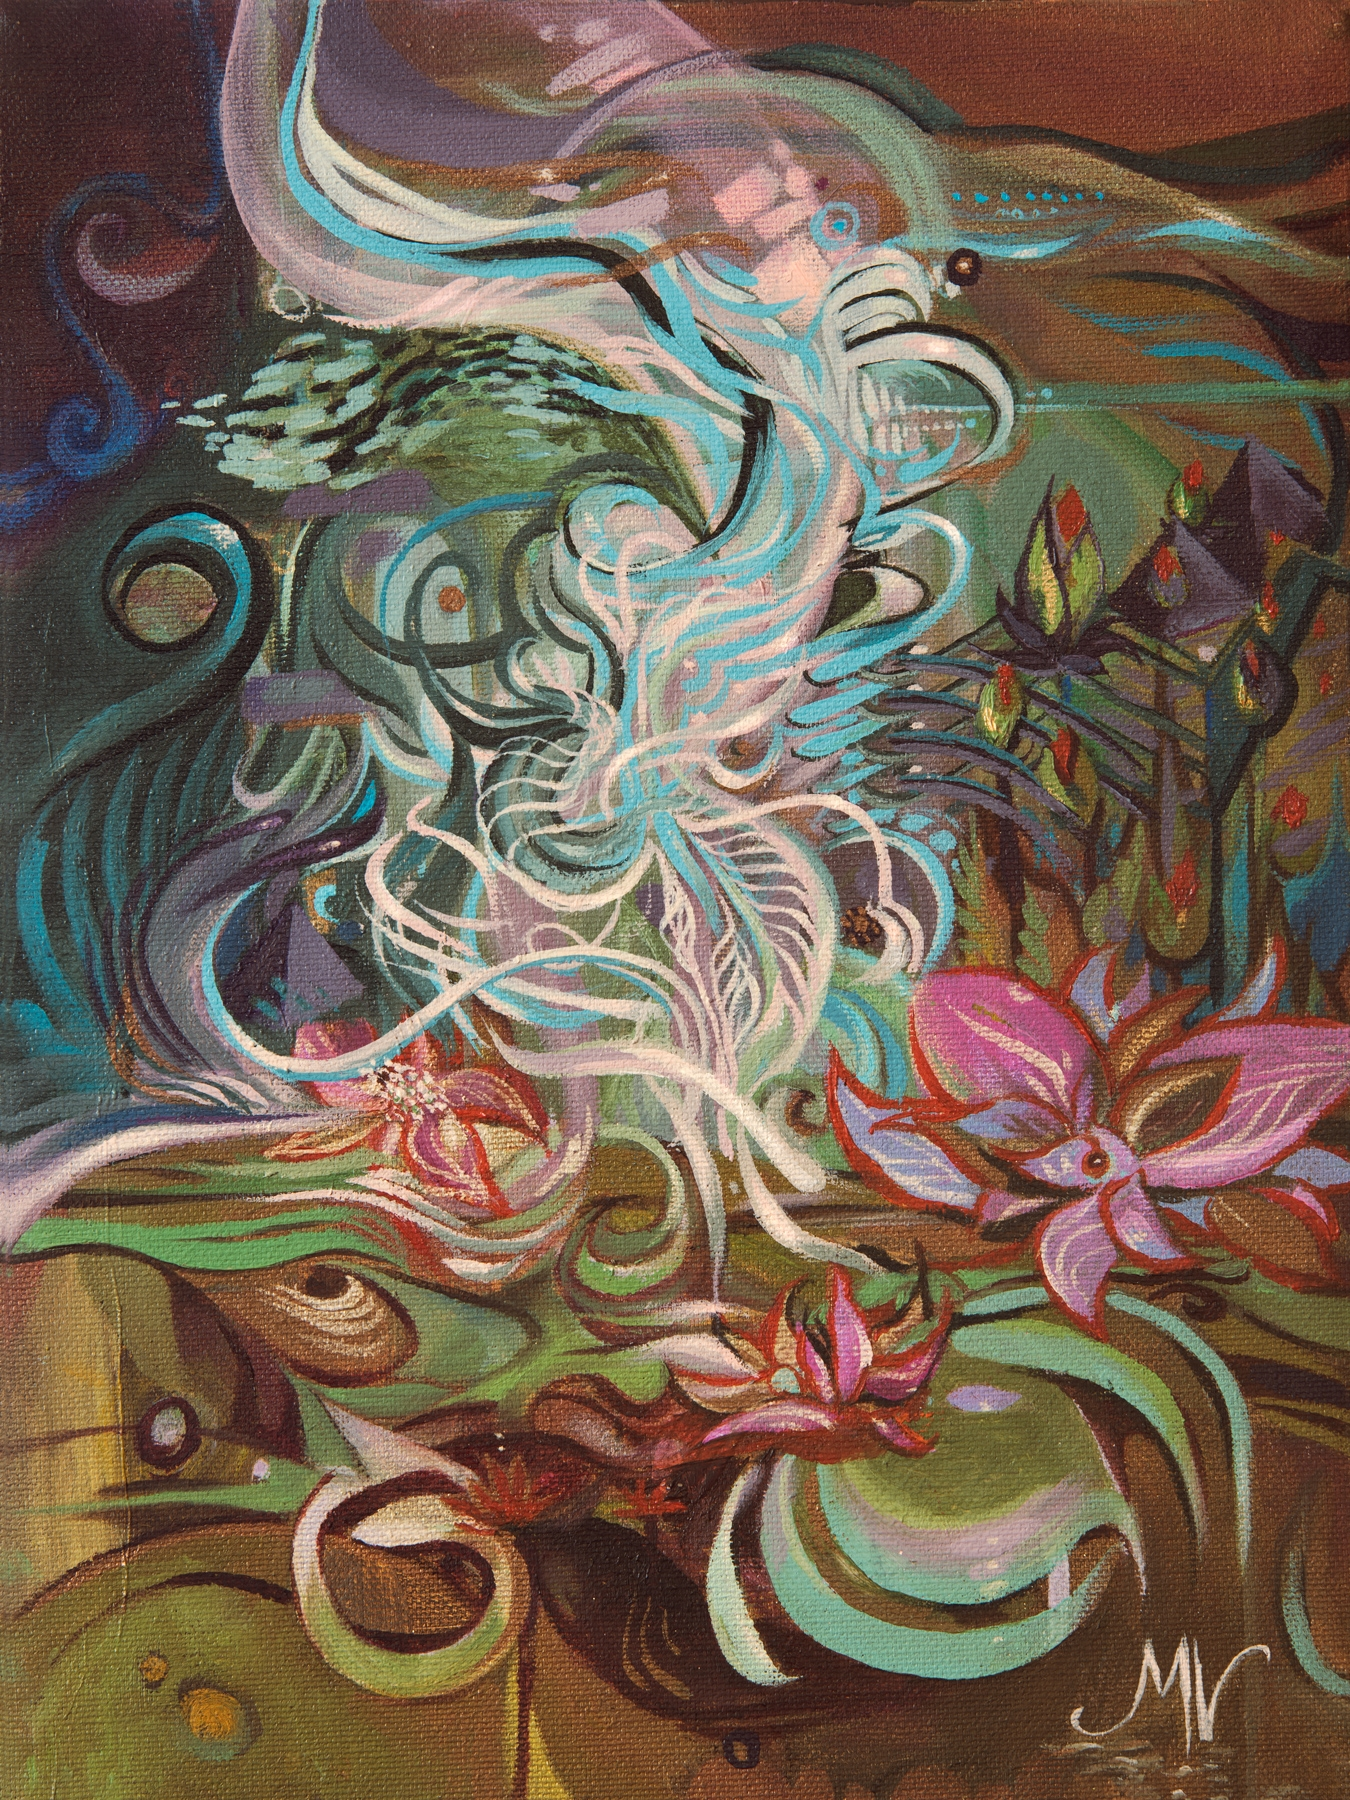 Lillies and Entities, 2009